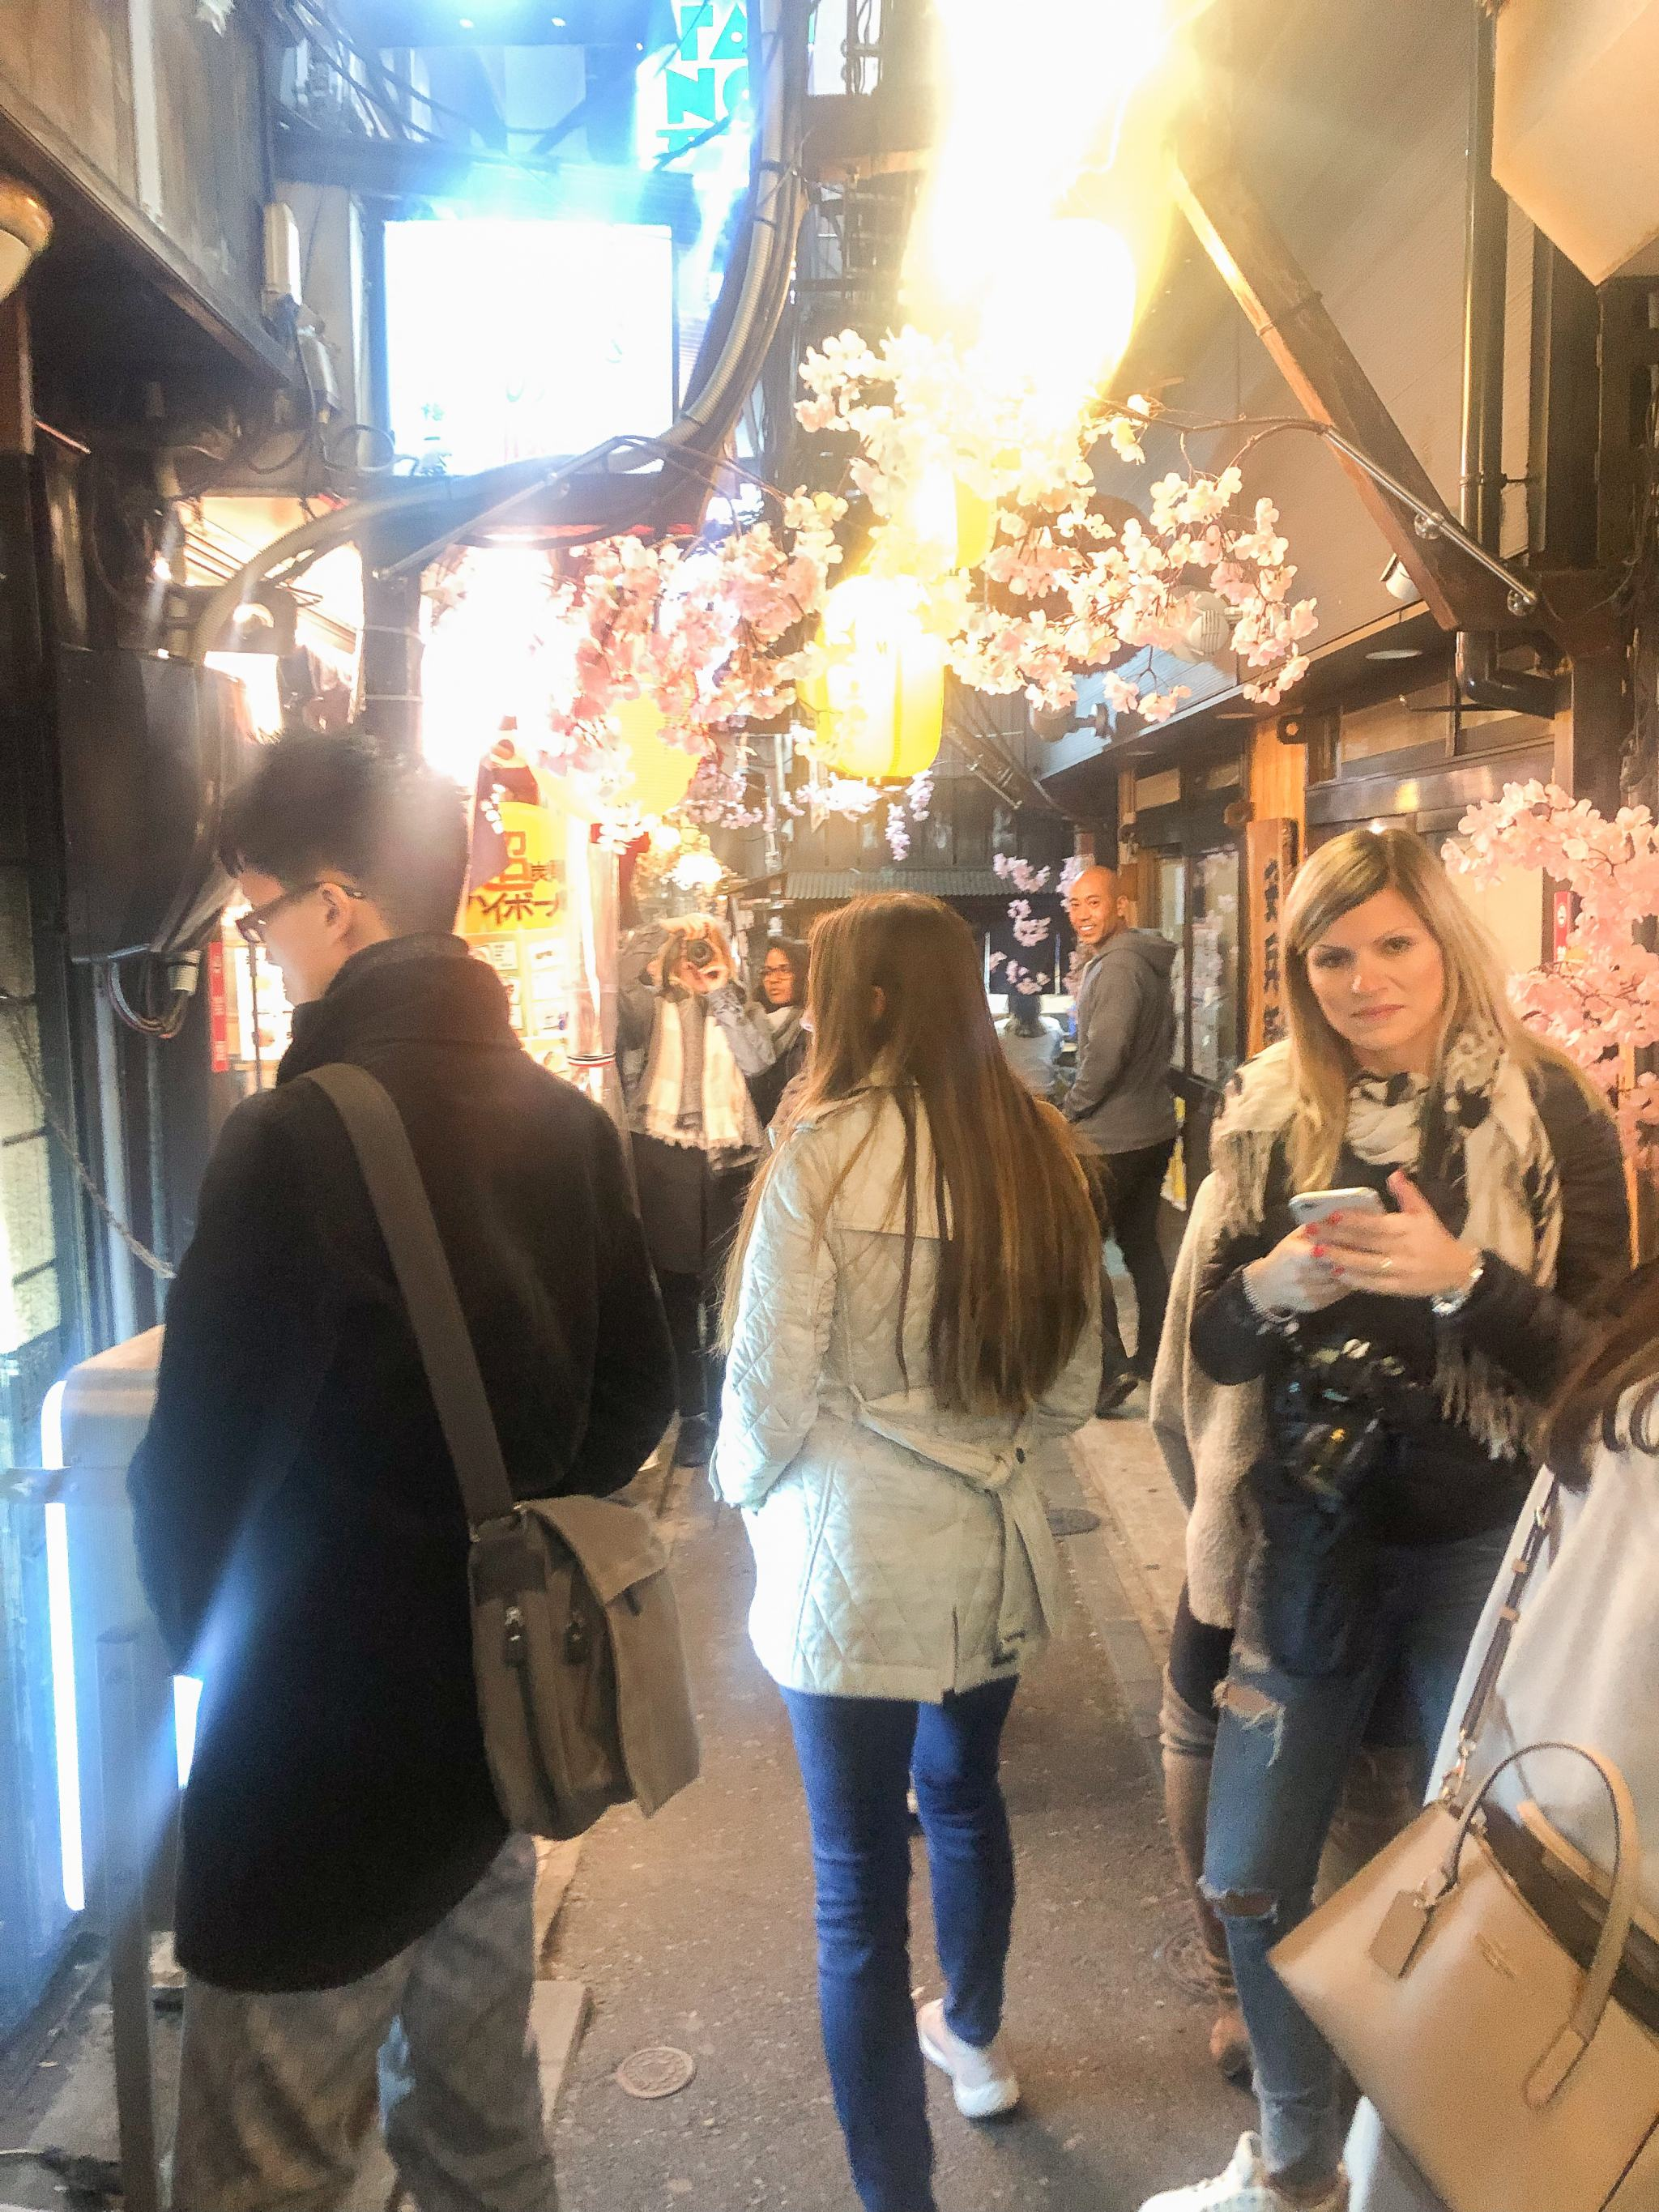 Tokyo - traveling in Tokyo - what to see in Japan - Meguro River Cherry Blossoms - shinjuku omoide yokocho alley